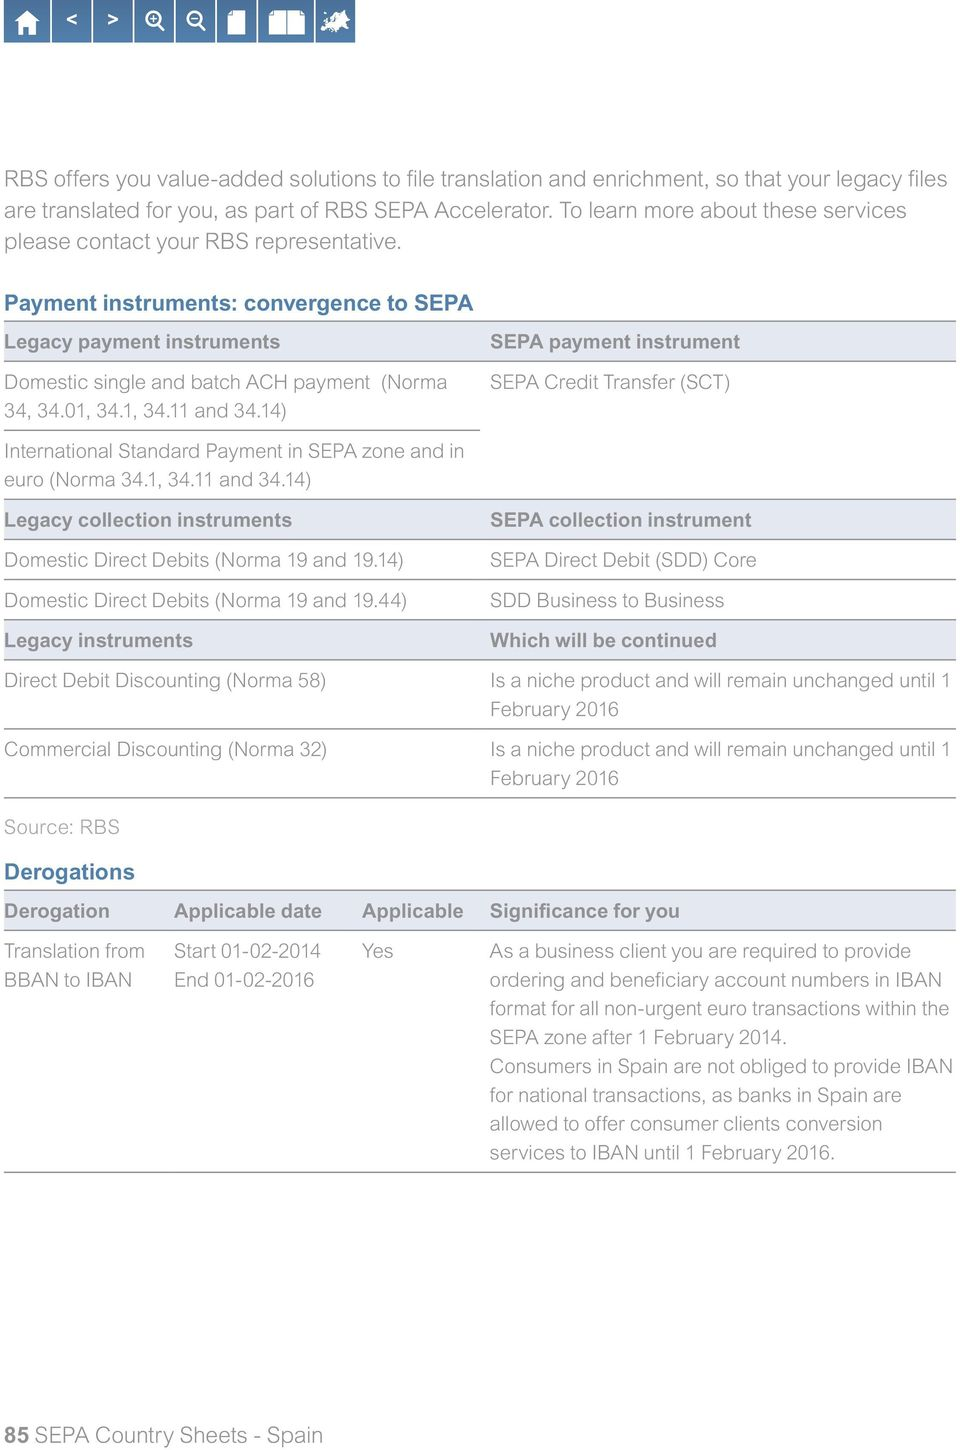 01, 34.1, 34.11 and 34.14) SEPA payment instrument SEPA Credit Transfer (SCT) International Standard Payment in SEPA zone and in euro (Norma 34.1, 34.11 and 34.14) Legacy collection instruments Domestic Direct s (Norma 19 and 19.